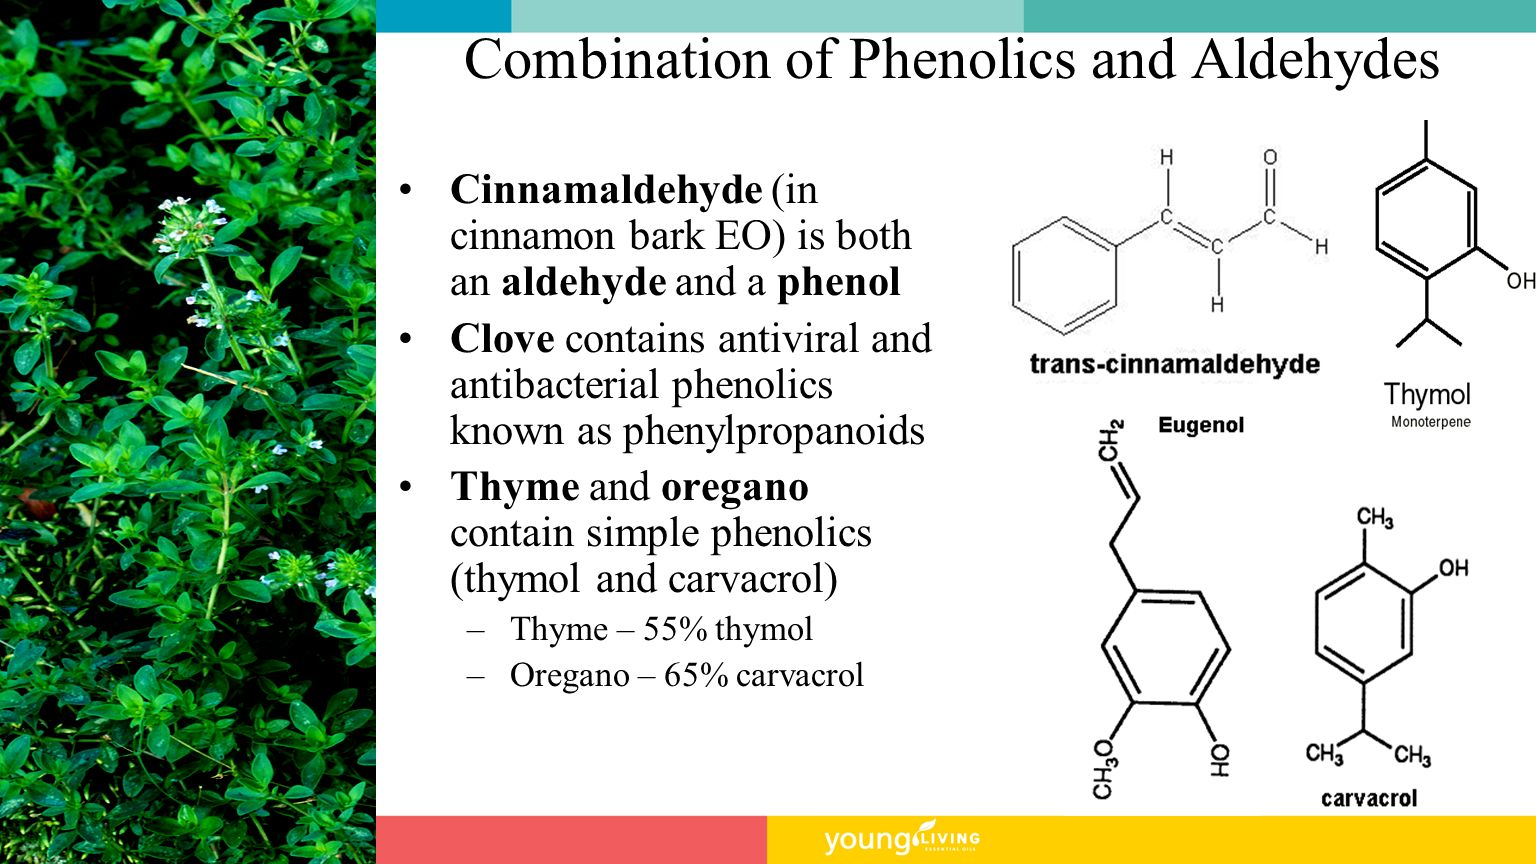 Combination of Phenolics and Aldehydes